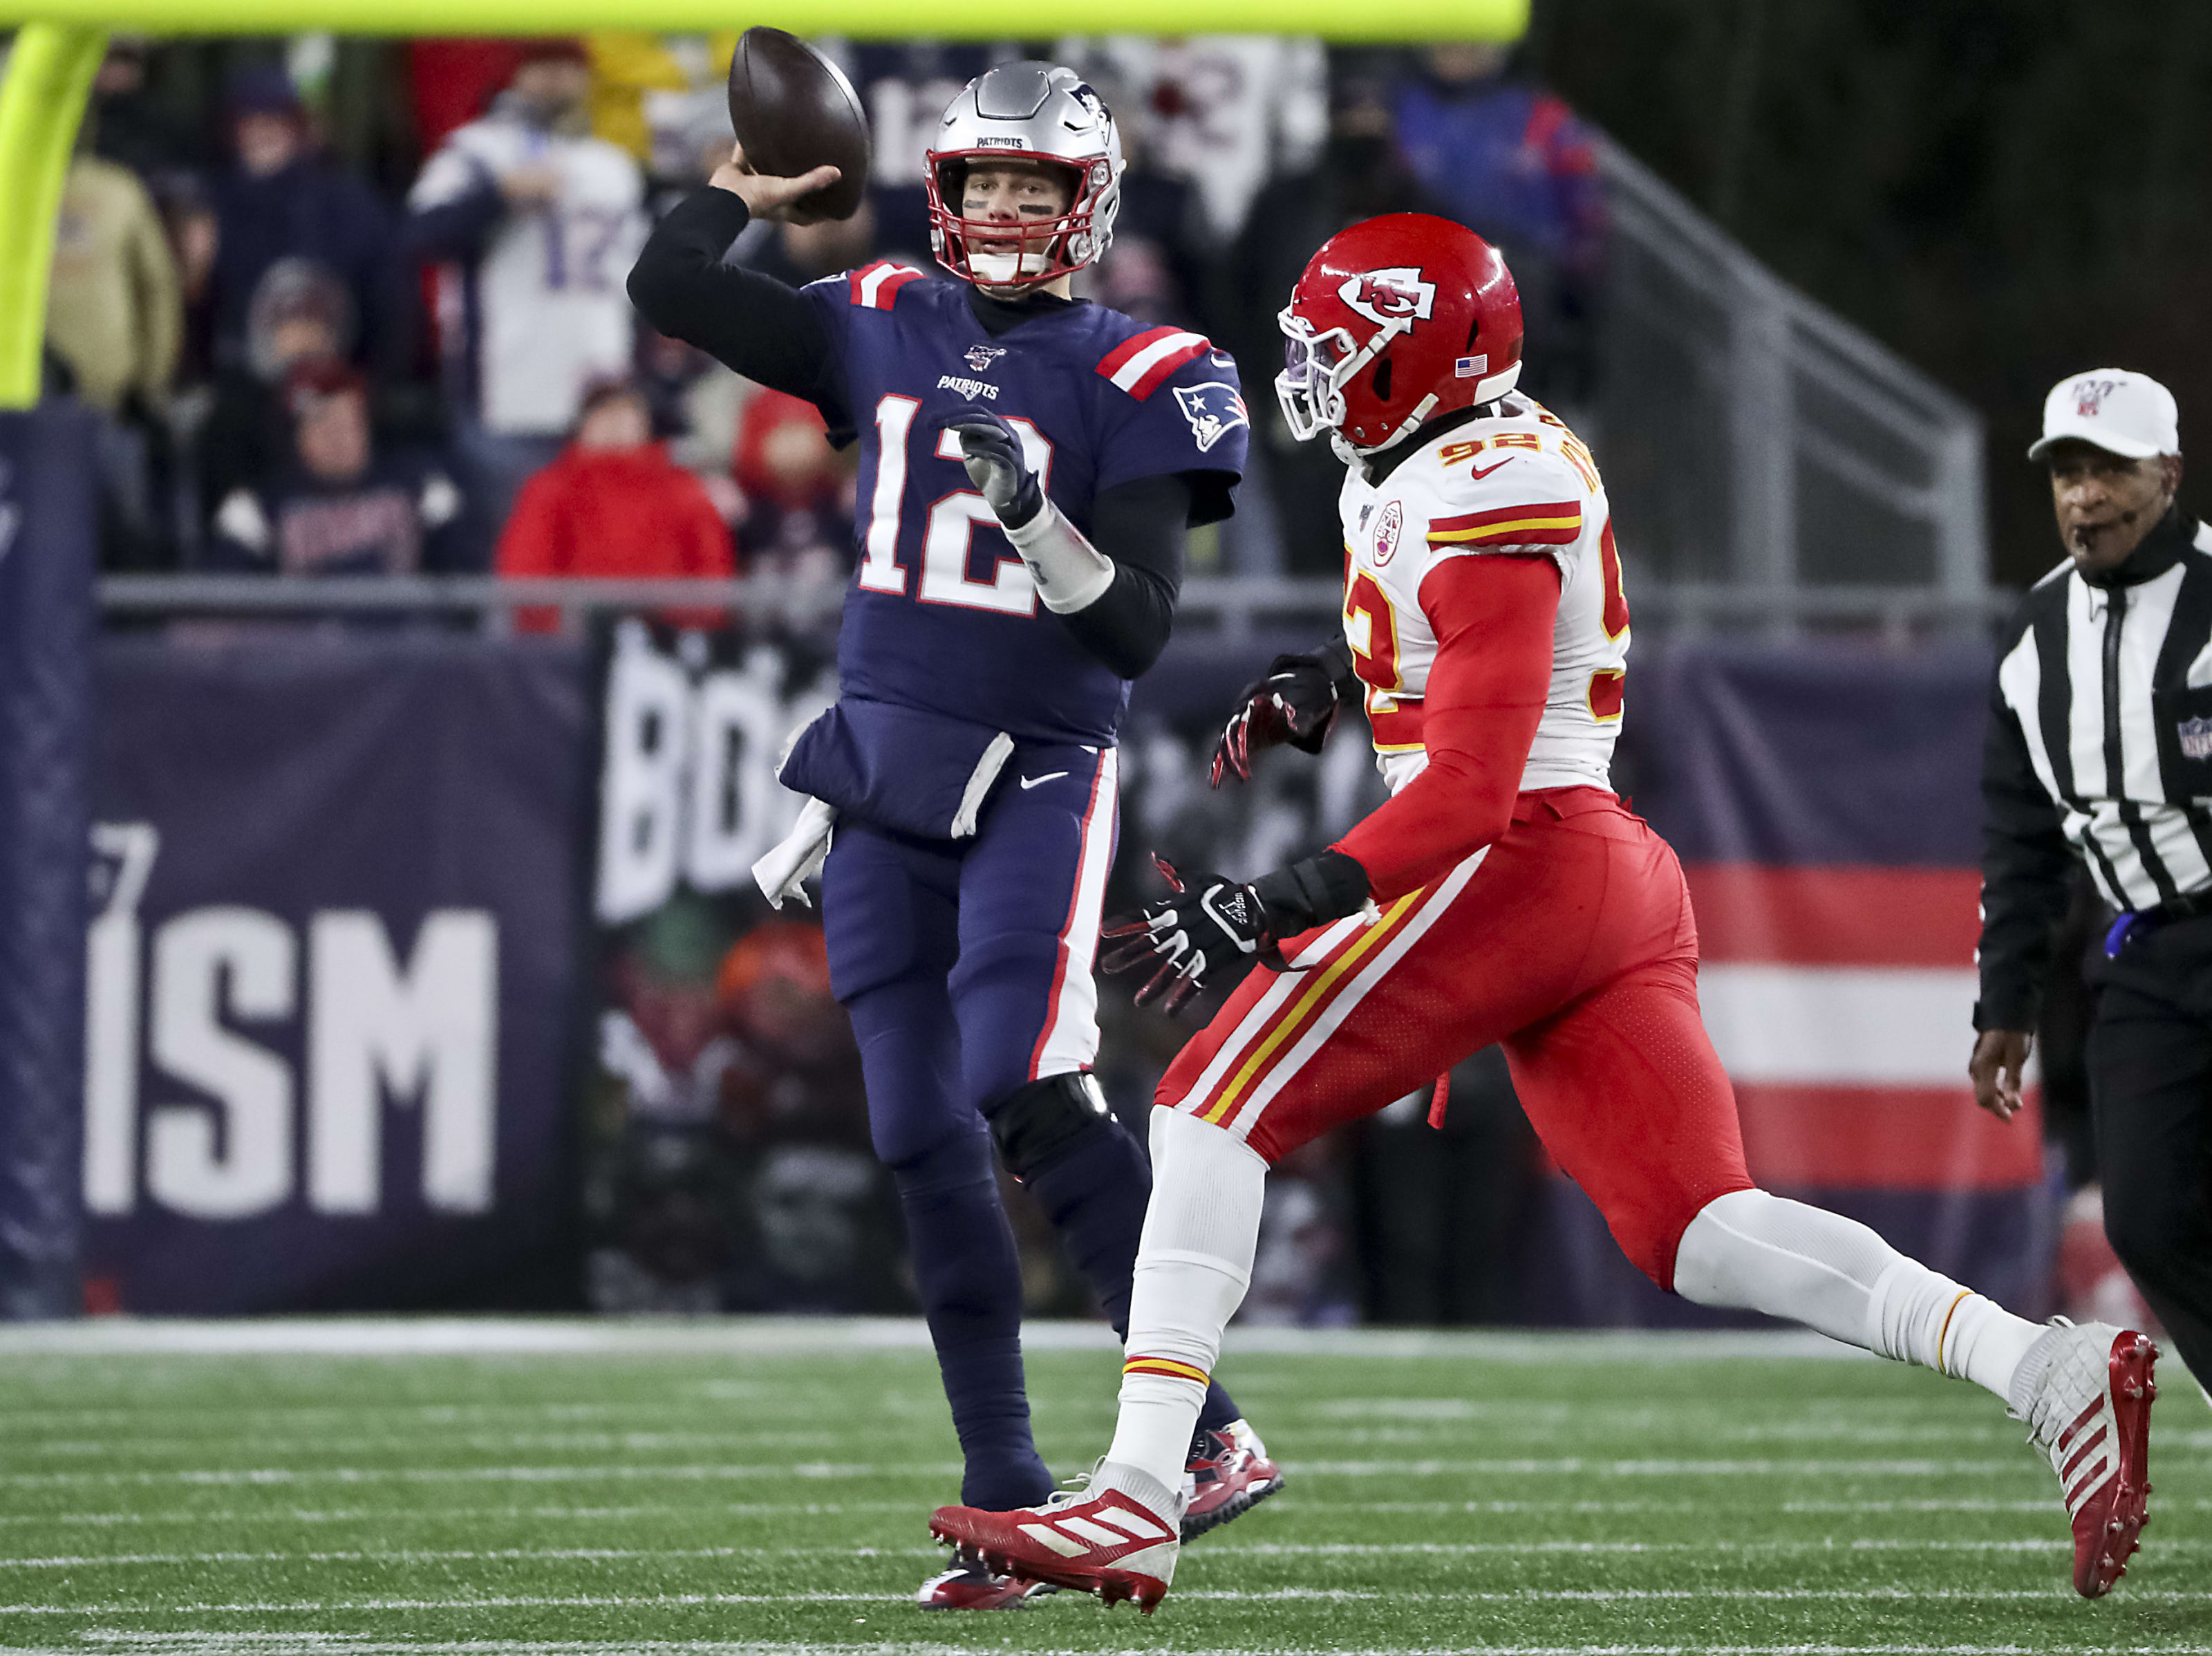 Kc Chiefs Winners And Losers From Week 14 Victory Vs Patriots